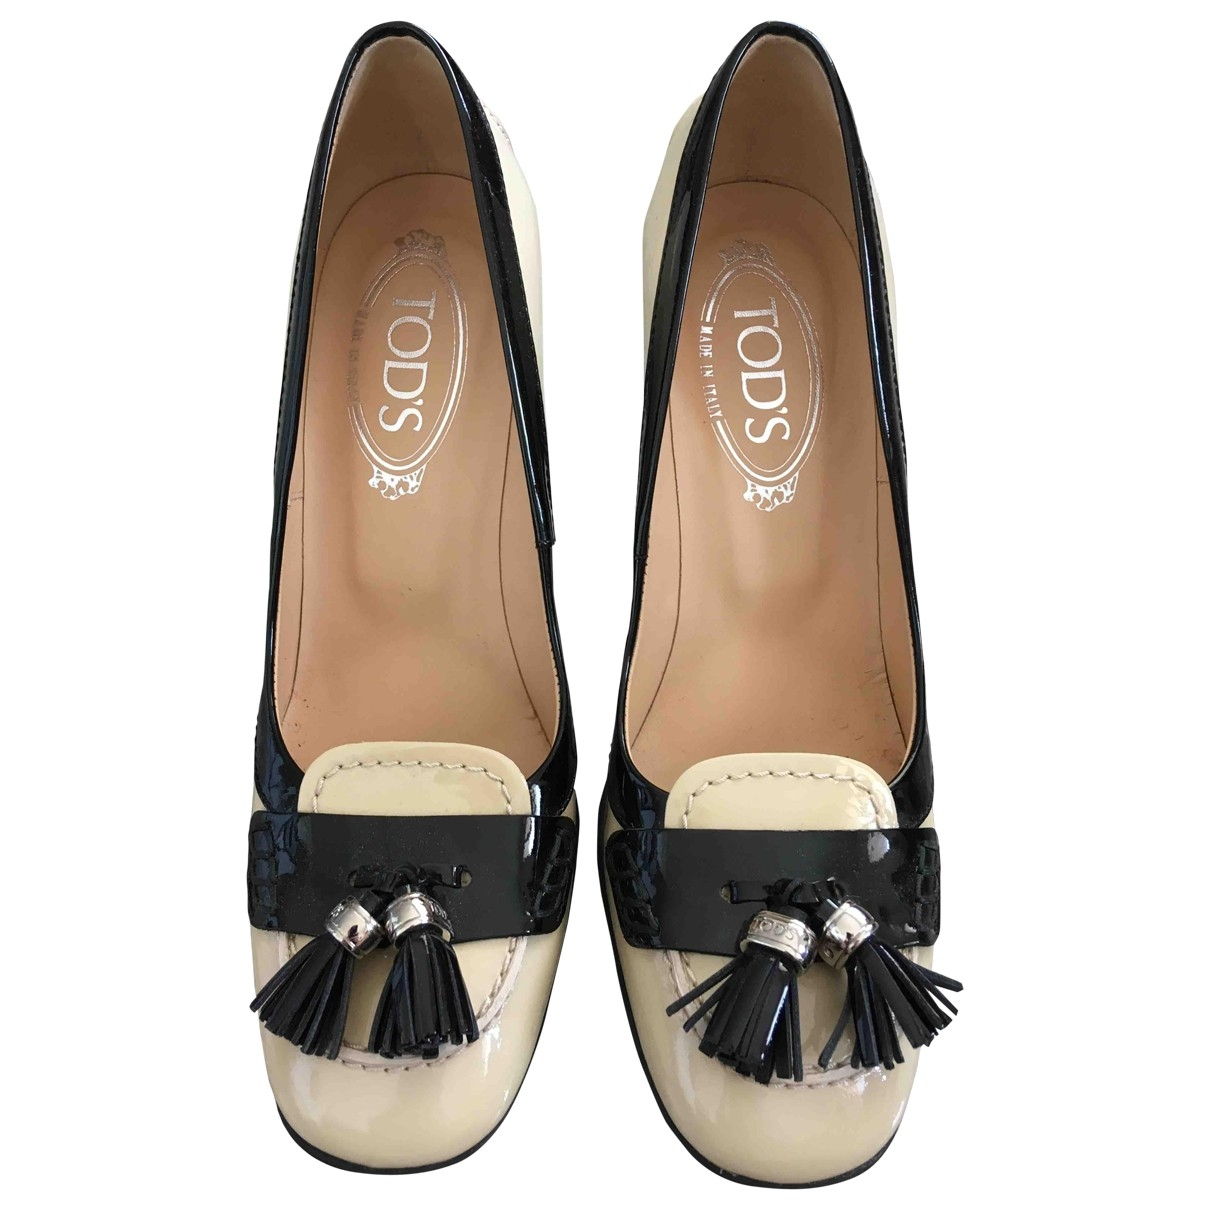 Tod's \N Beige Patent leather Heels for Women 37 EU